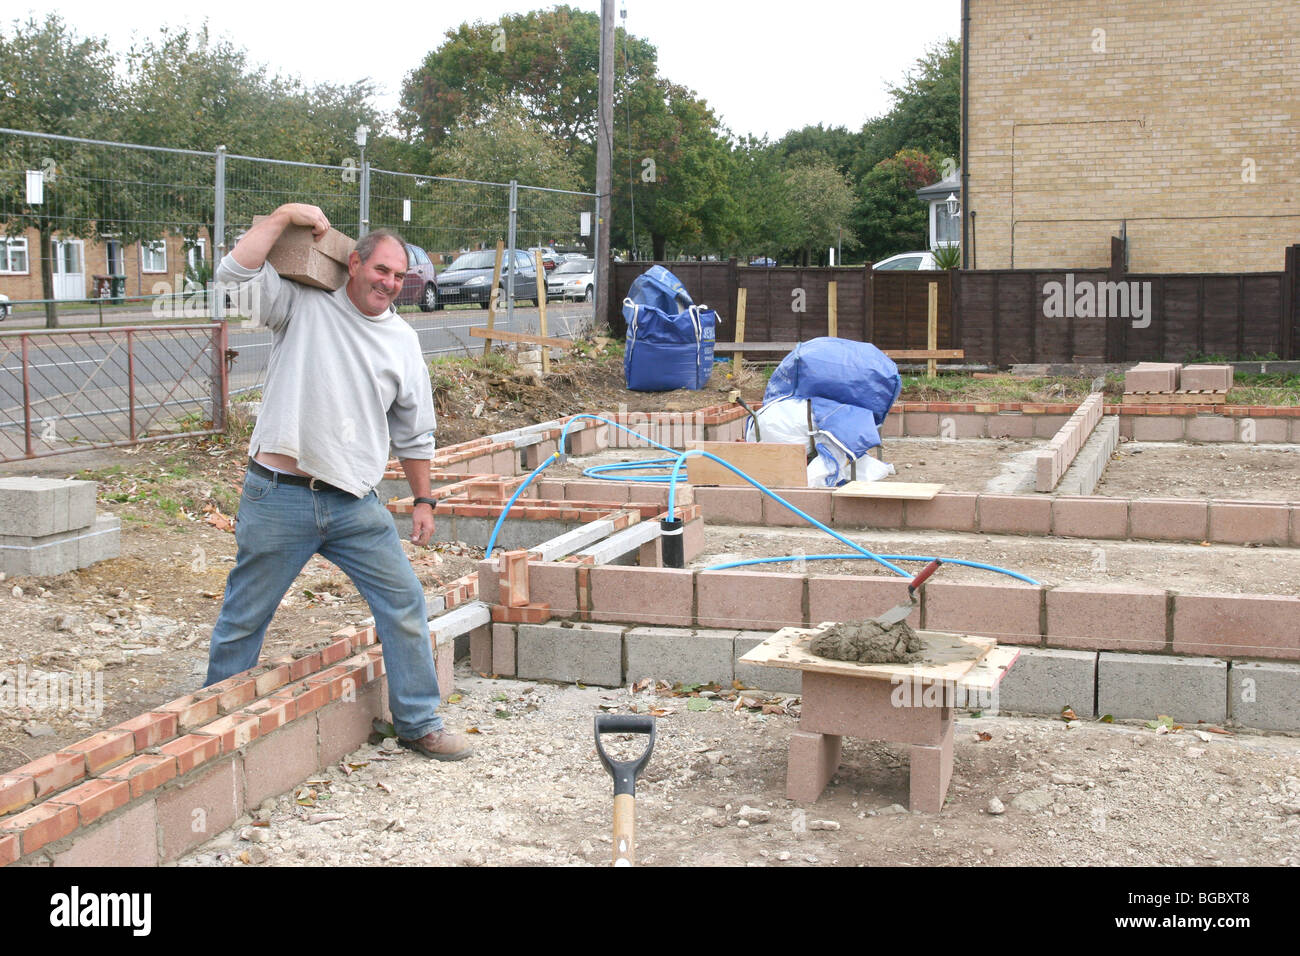 A bricklayer carrying bricks on a building site in the UK. - Stock Image